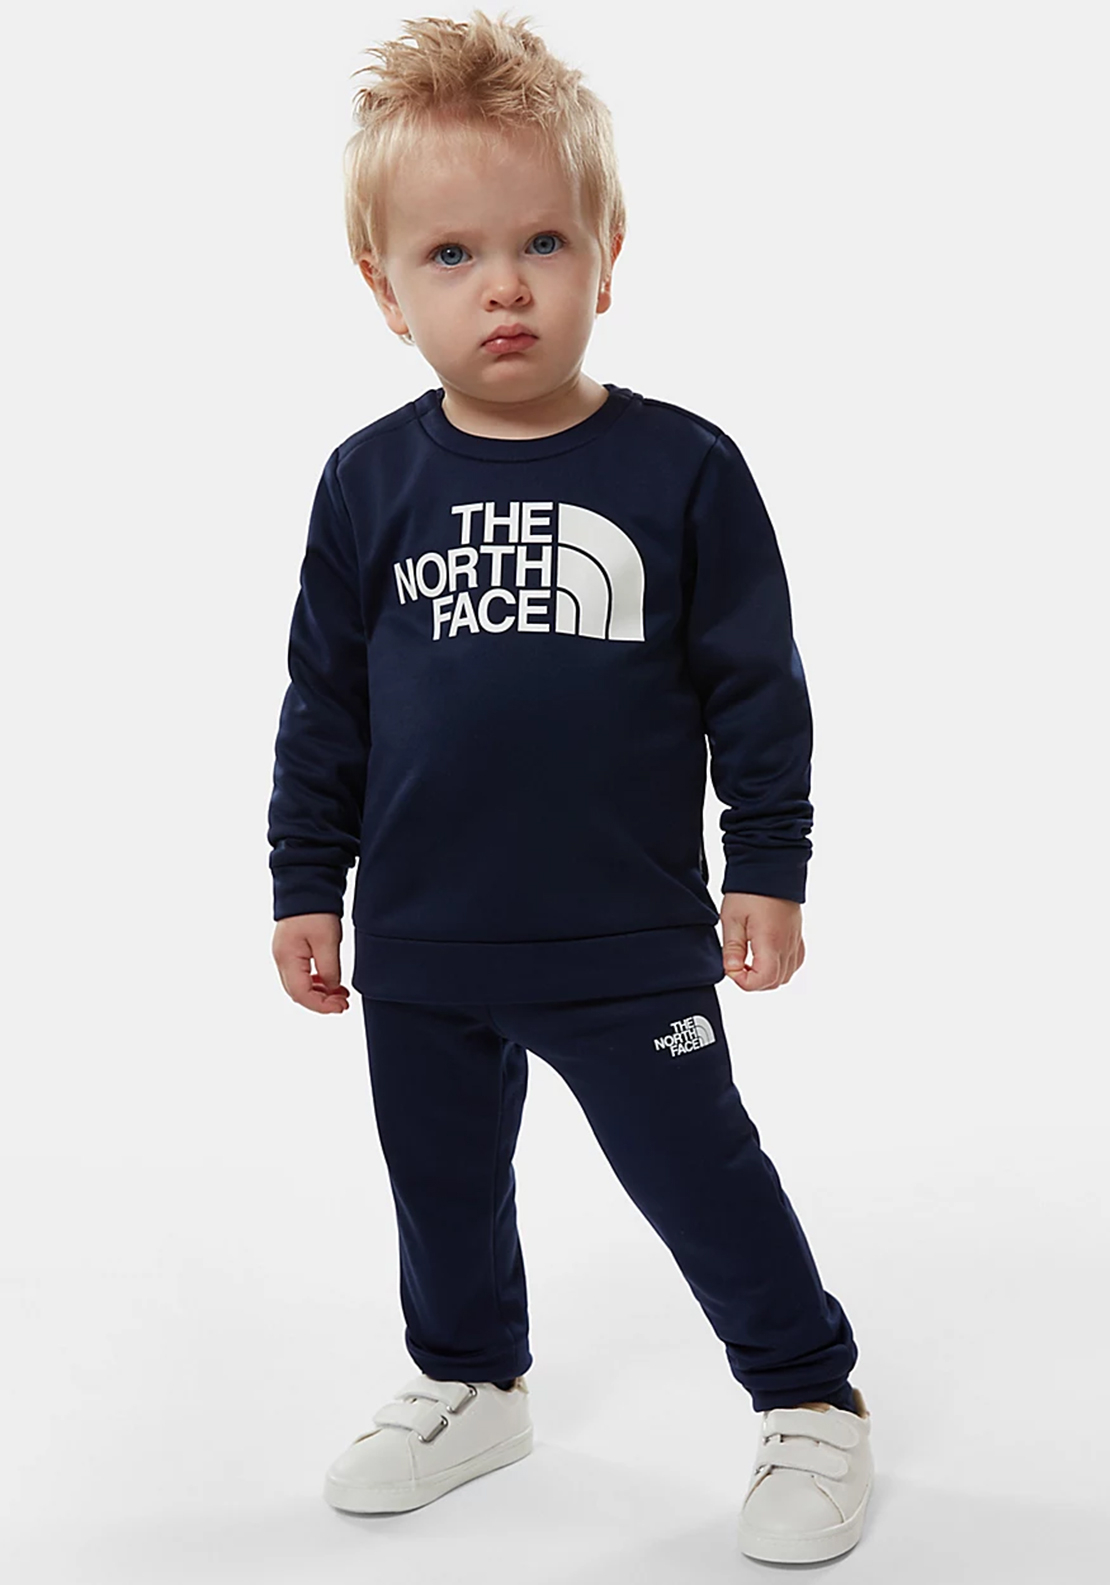 The North Face Mini Boys Surg Crew Set, Navy